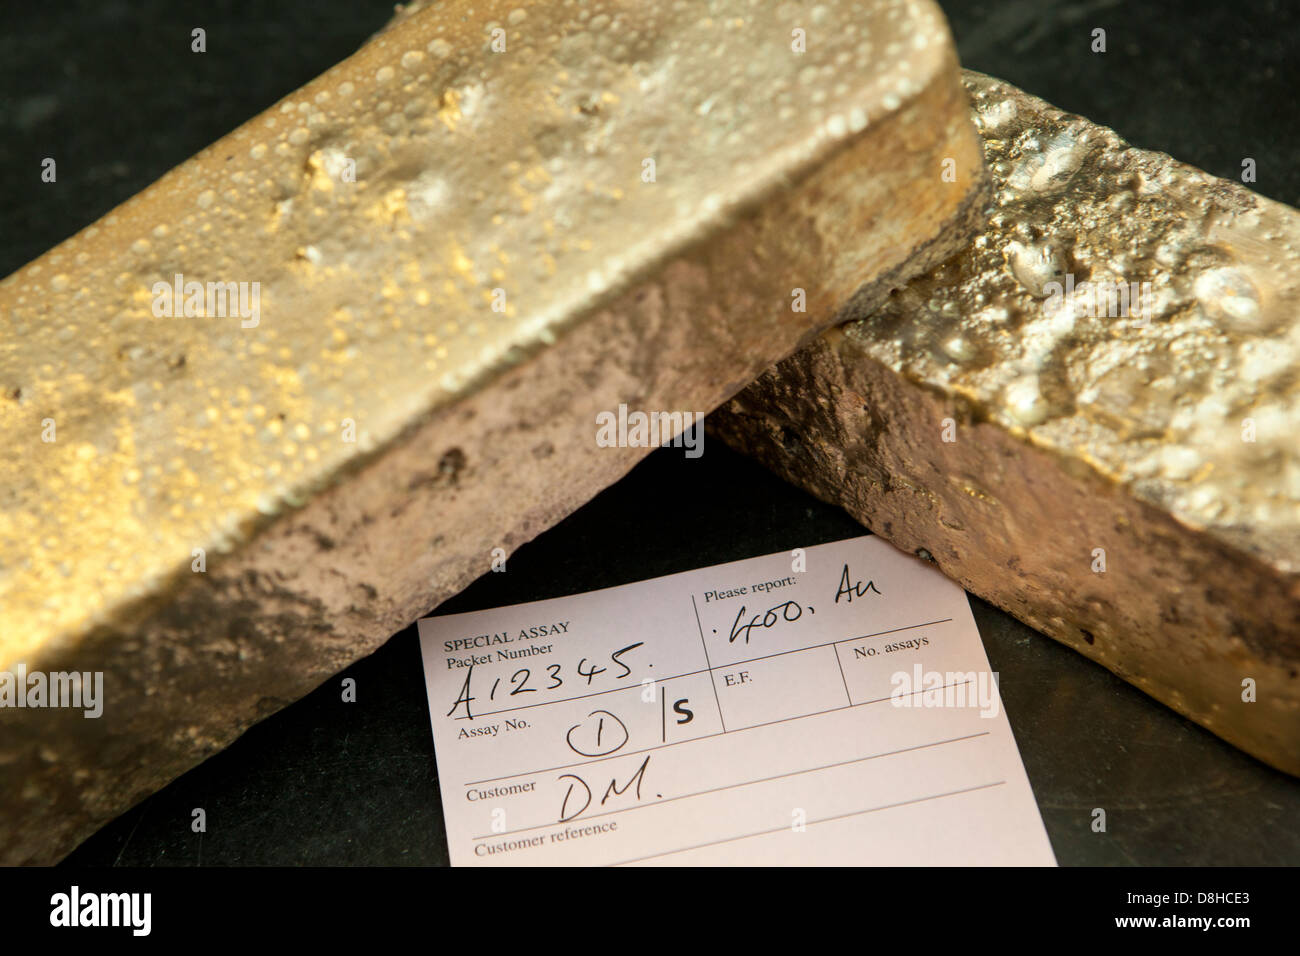 Molten gold bar made from recycled scrap gold at the London Assay Office in Gutter Lane Photo Credit: David Levenson - Stock Image